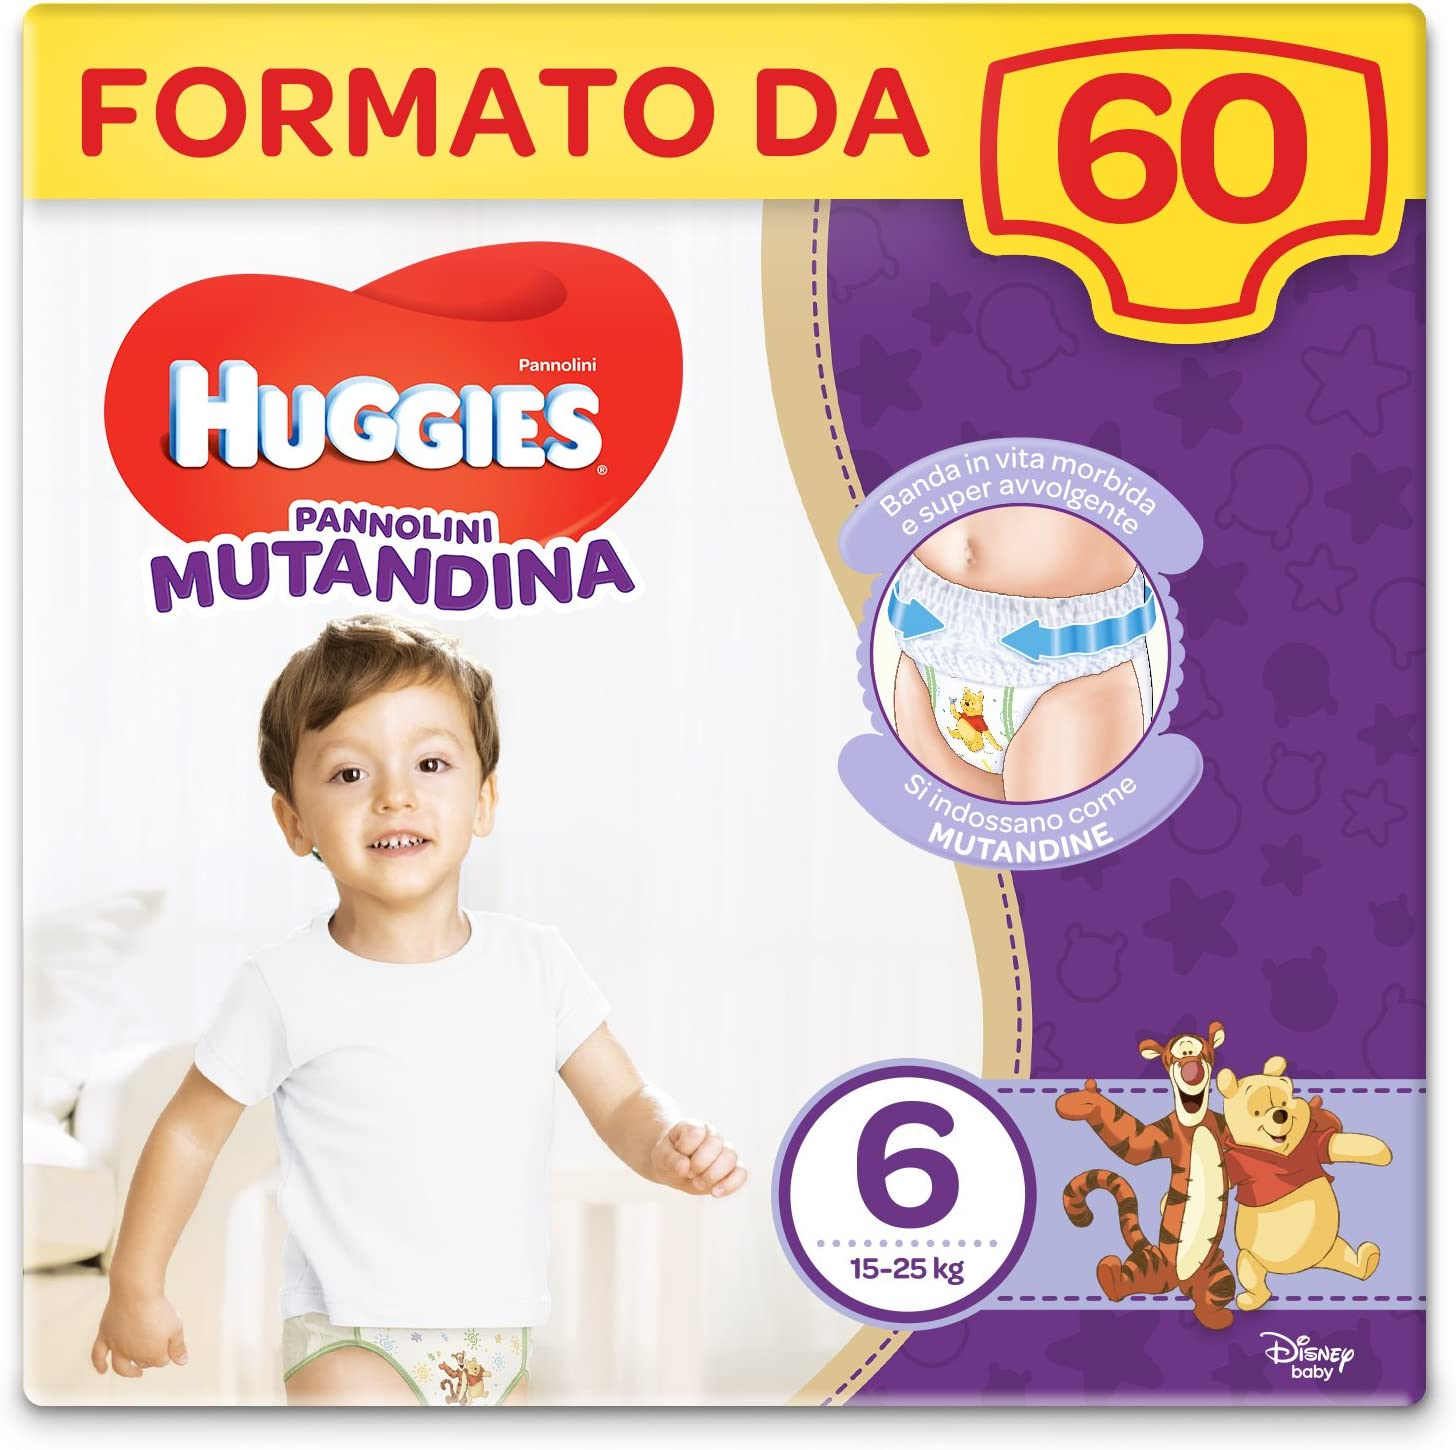 Huggies Nappy Panty 15-25 kg Size 6 2 Packs of 30 Pieces